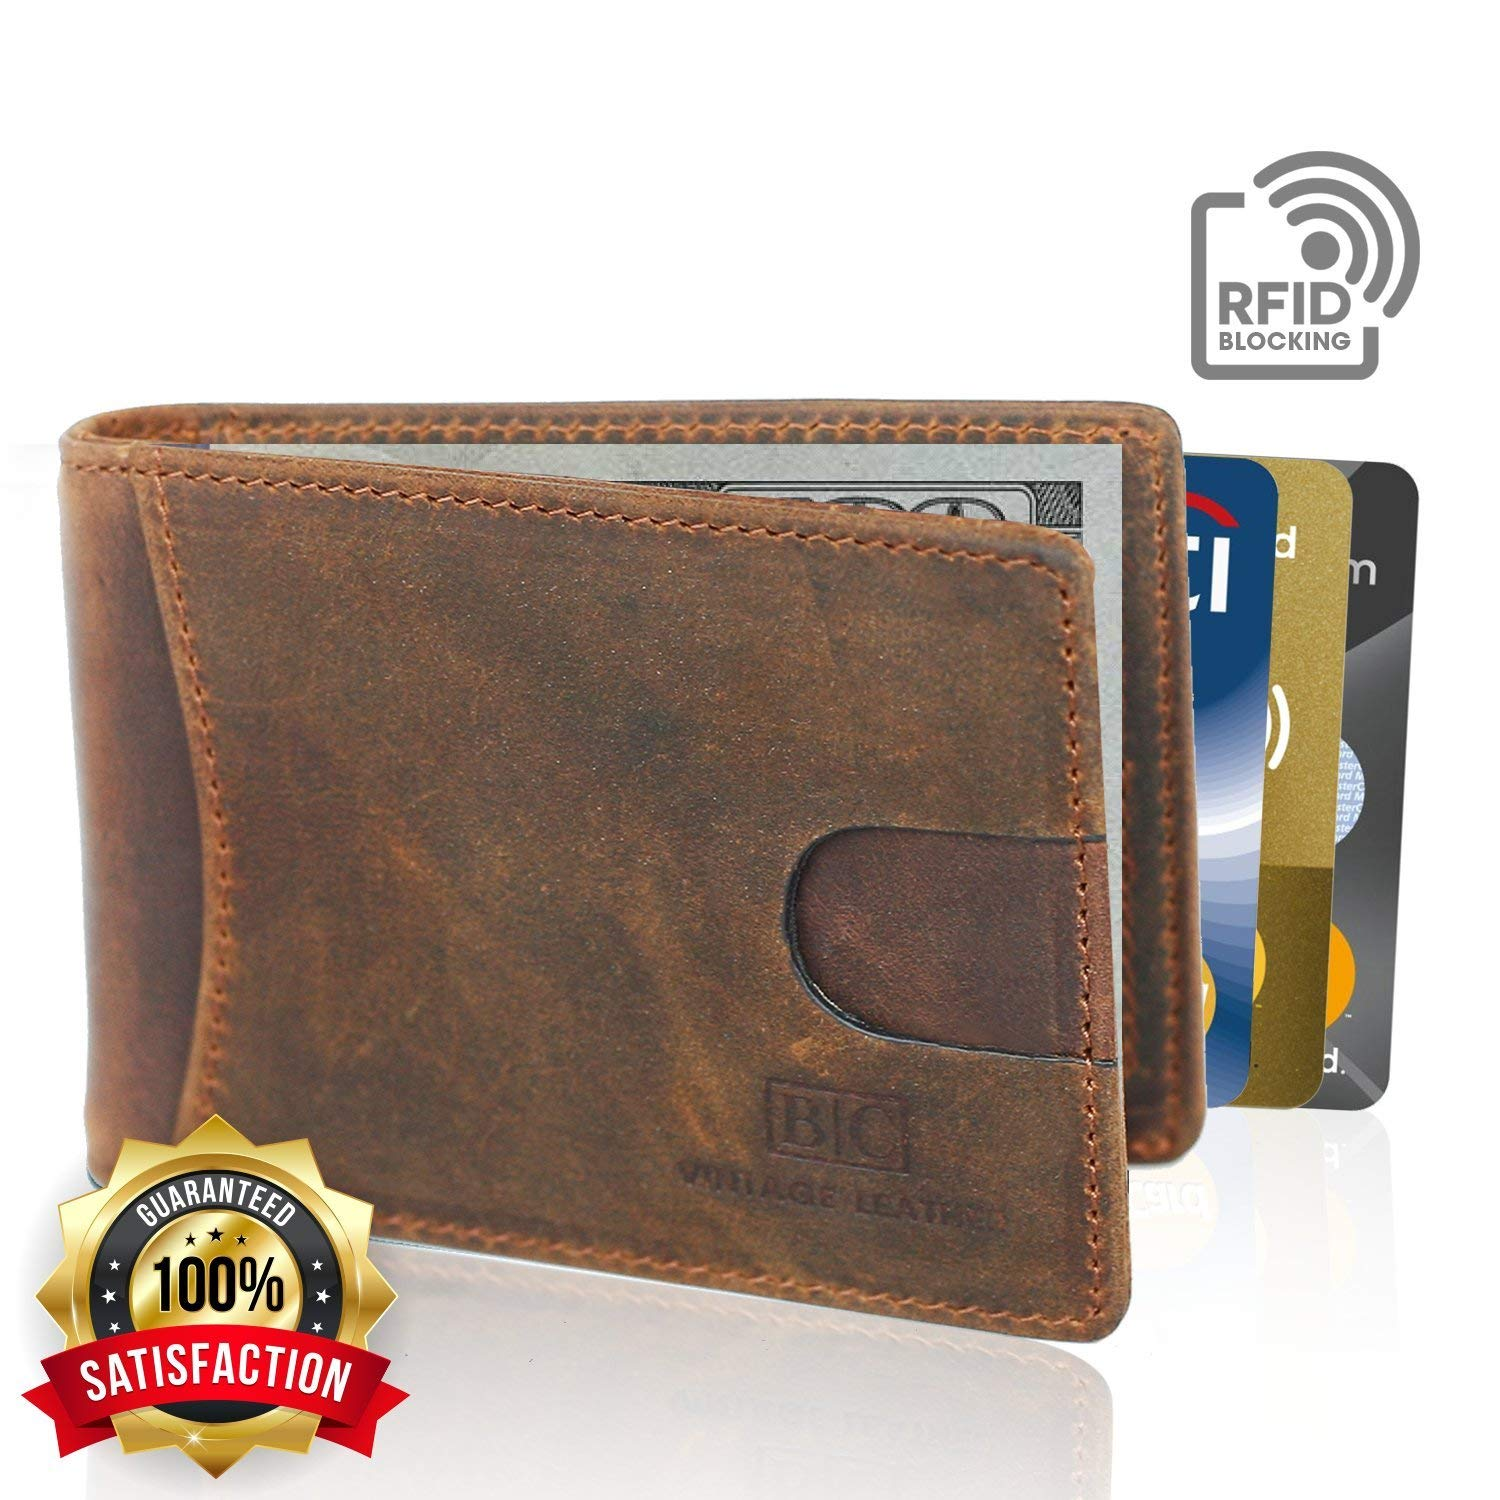 B C Vintage Leather – Mens Slim Minimalist Style Wallet - Ultra Thin RFID Blocking Mens Genuine Leather Billfold with Money Clip and ID window – Holds 10 Bills Cash & 8 Cards